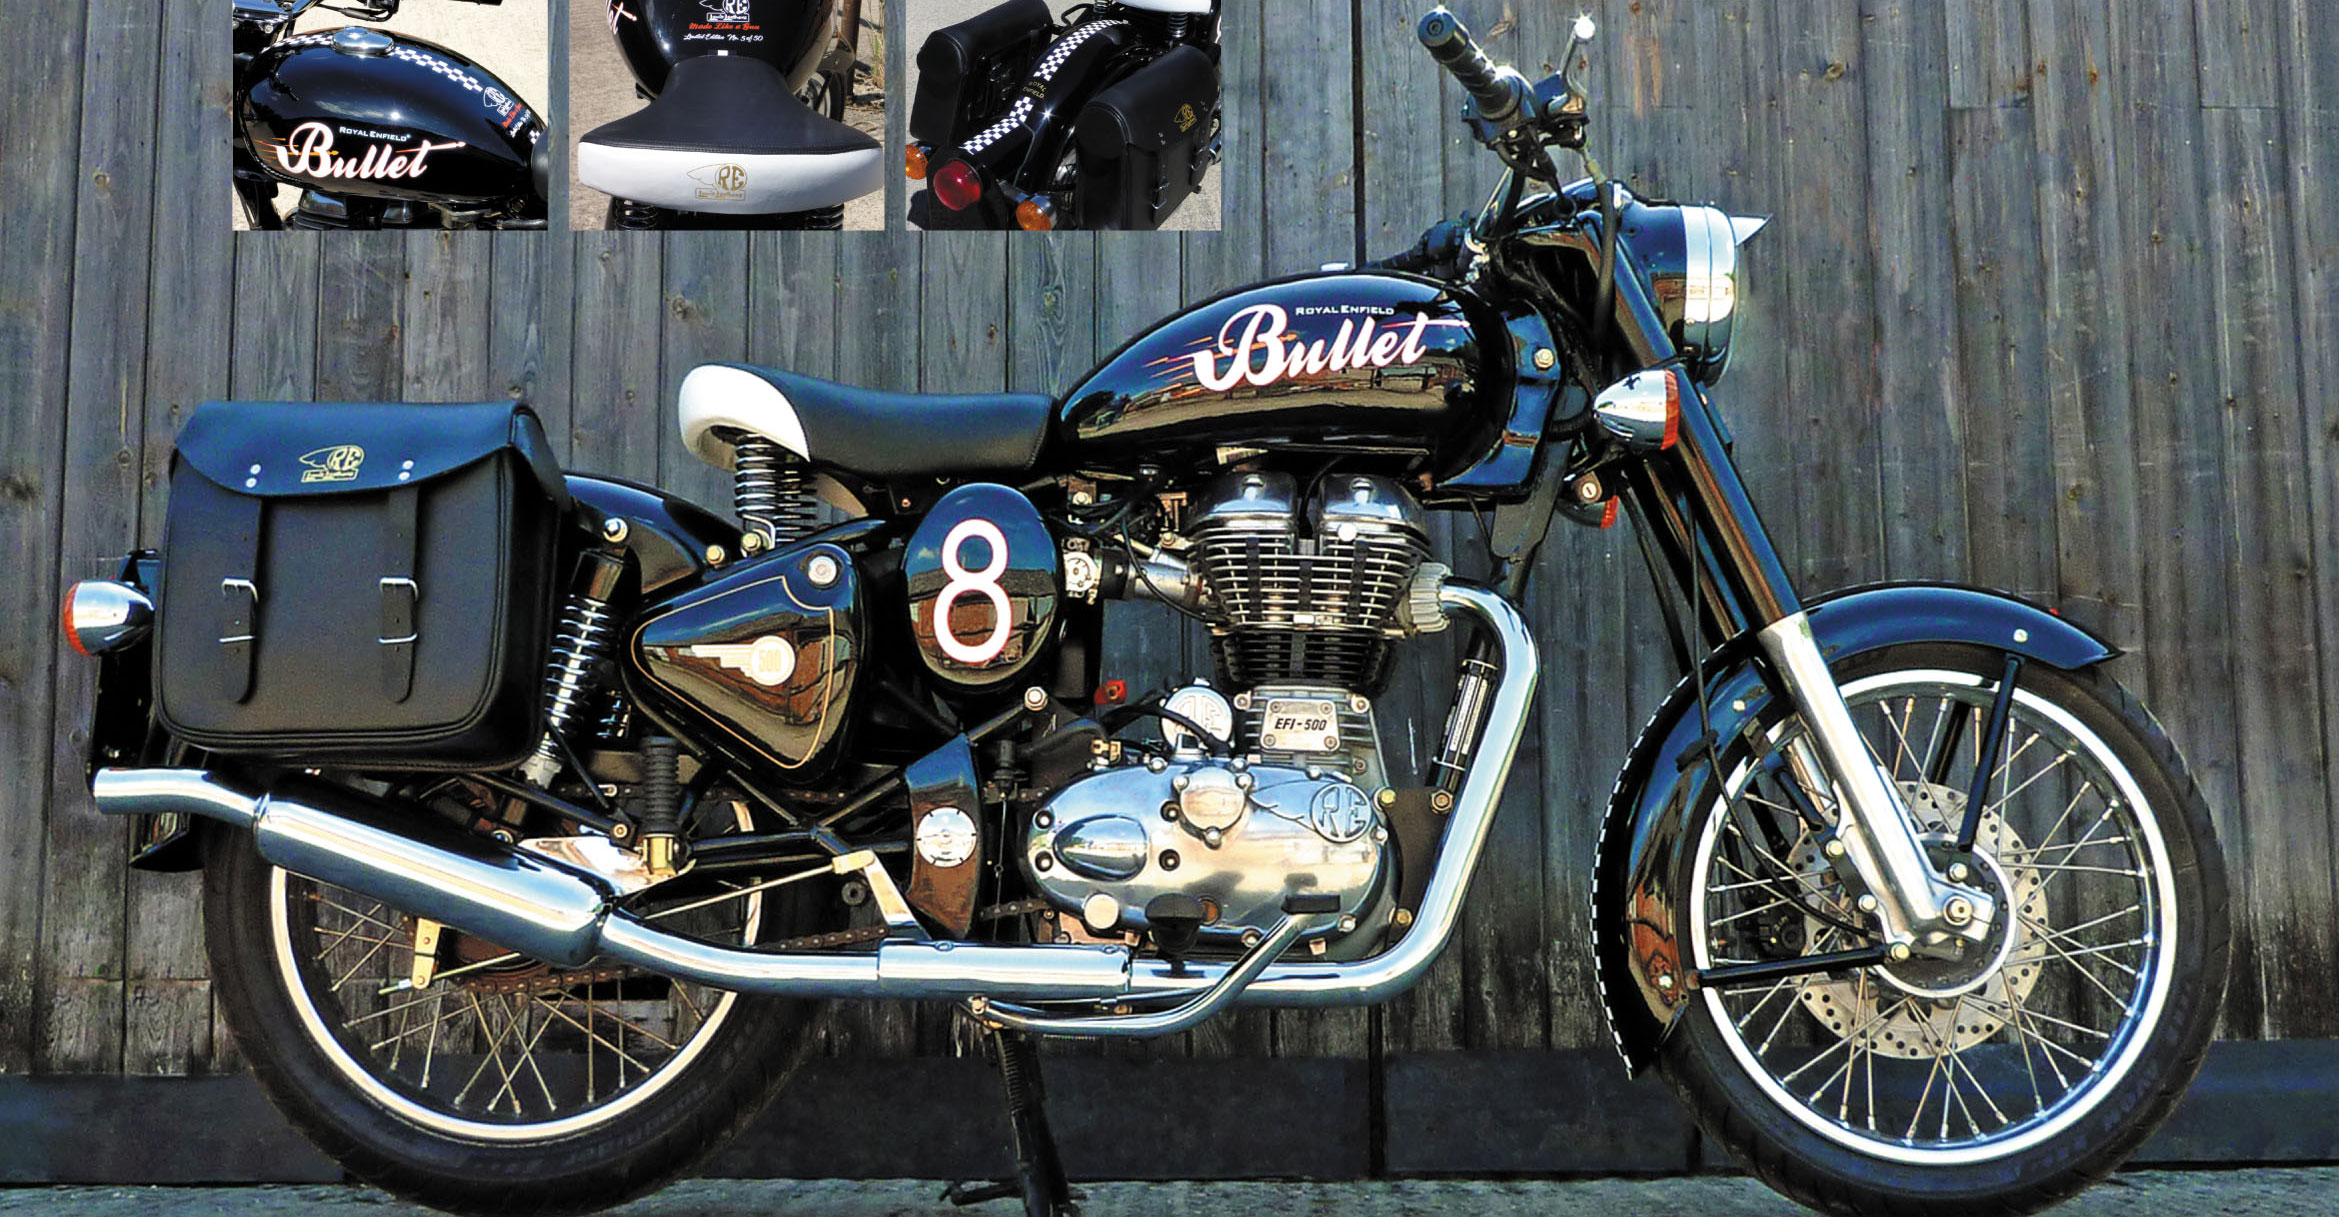 Royal Enfield Bullet 500 Trial Trail 2001 images #122966